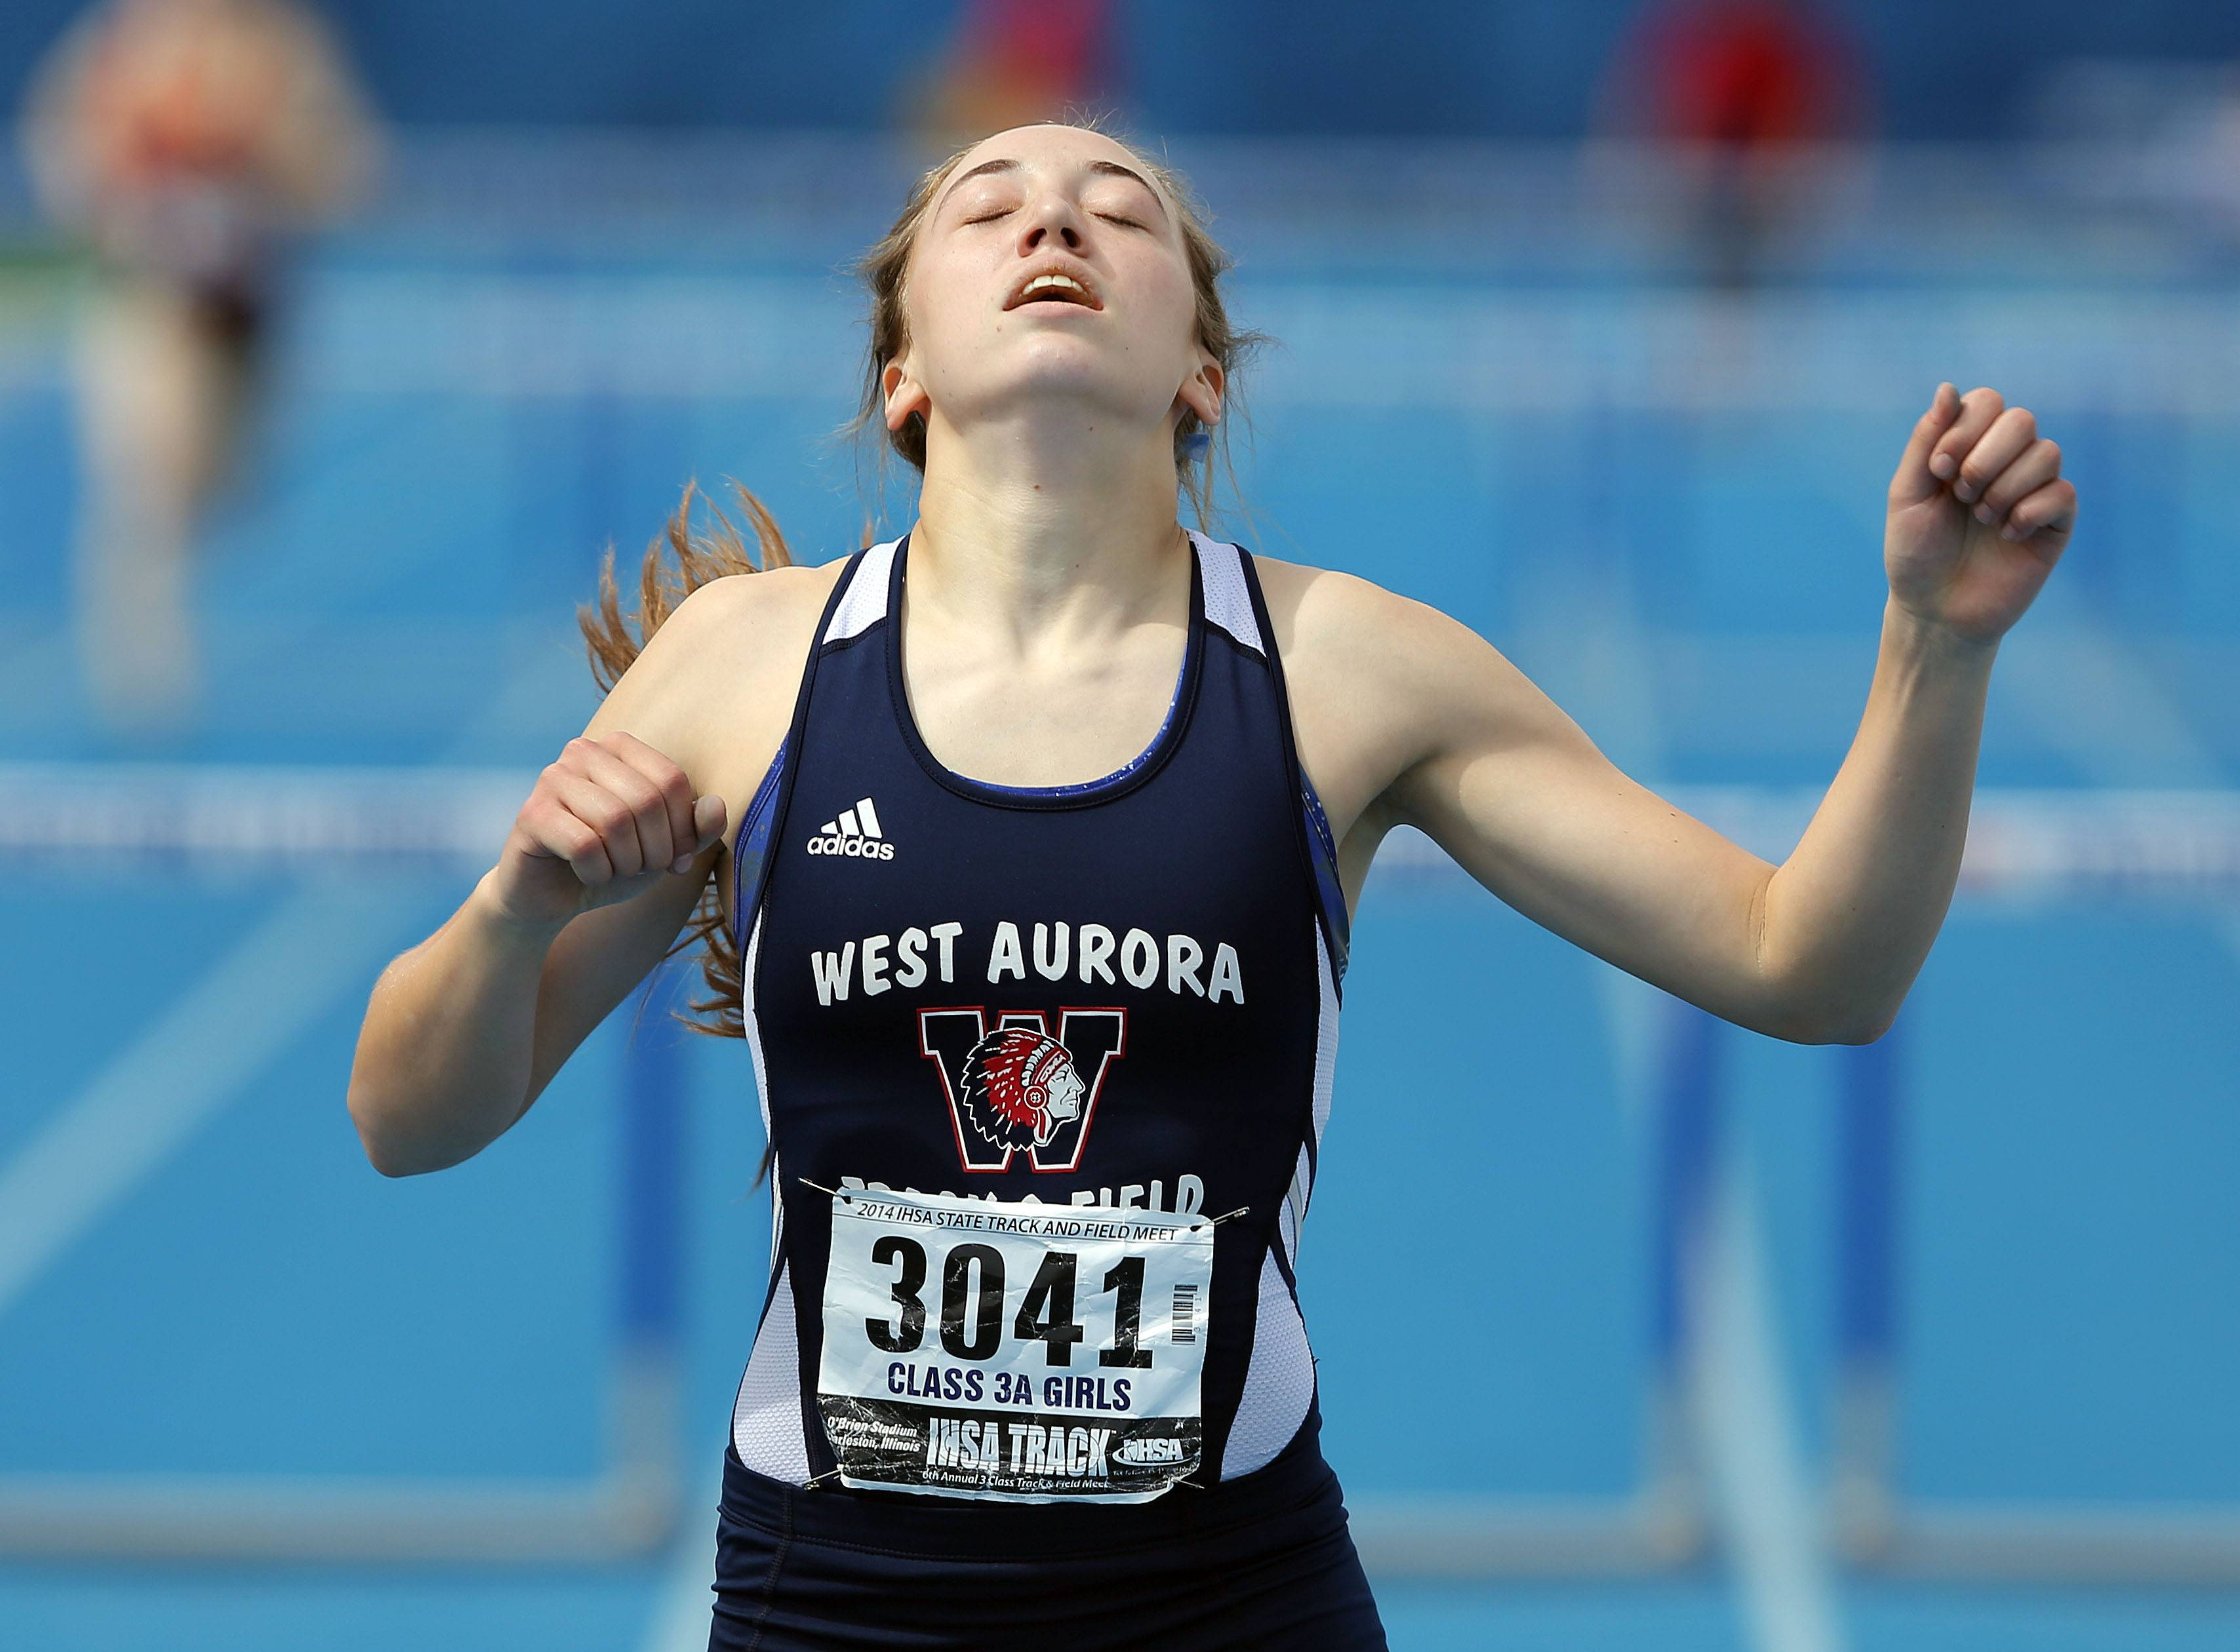 West Aurora's Emma Spagnola reacts after winning the class 3A 300-meter low hurdles during the girls track and field state finals at Eastern Illinois University in Charleston Saturday.